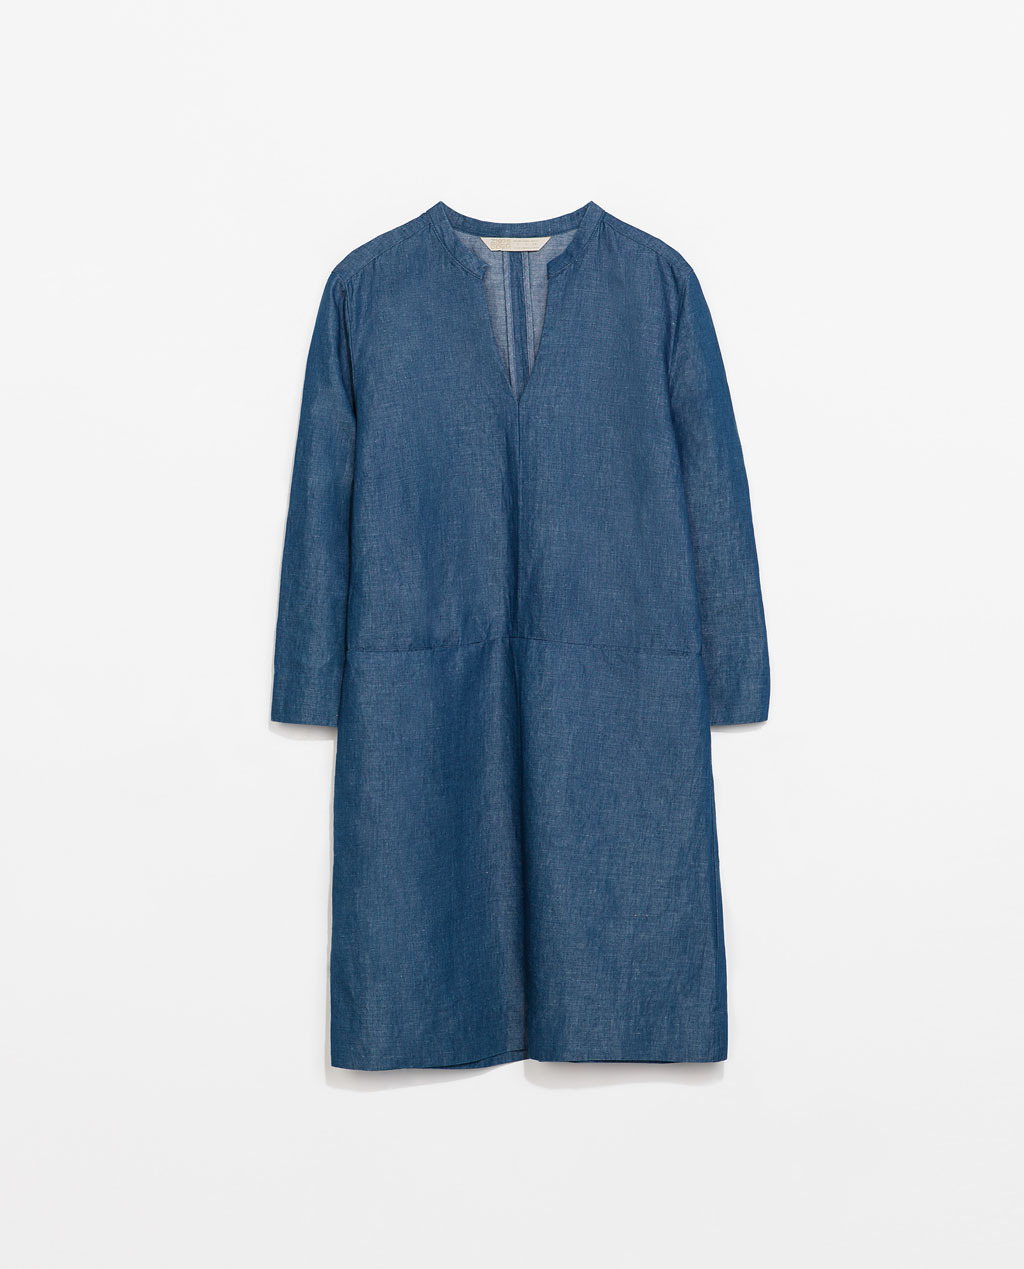 Denim Shirt Dress - style: tunic; length: mid thigh; pattern: plain; predominant colour: denim; occasions: casual; fit: straight cut; neckline: collarstand & mandarin with v-neck; fibres: cotton - mix; sleeve length: 3/4 length; sleeve style: standard; texture group: denim; pattern type: fabric; season: s/s 2014